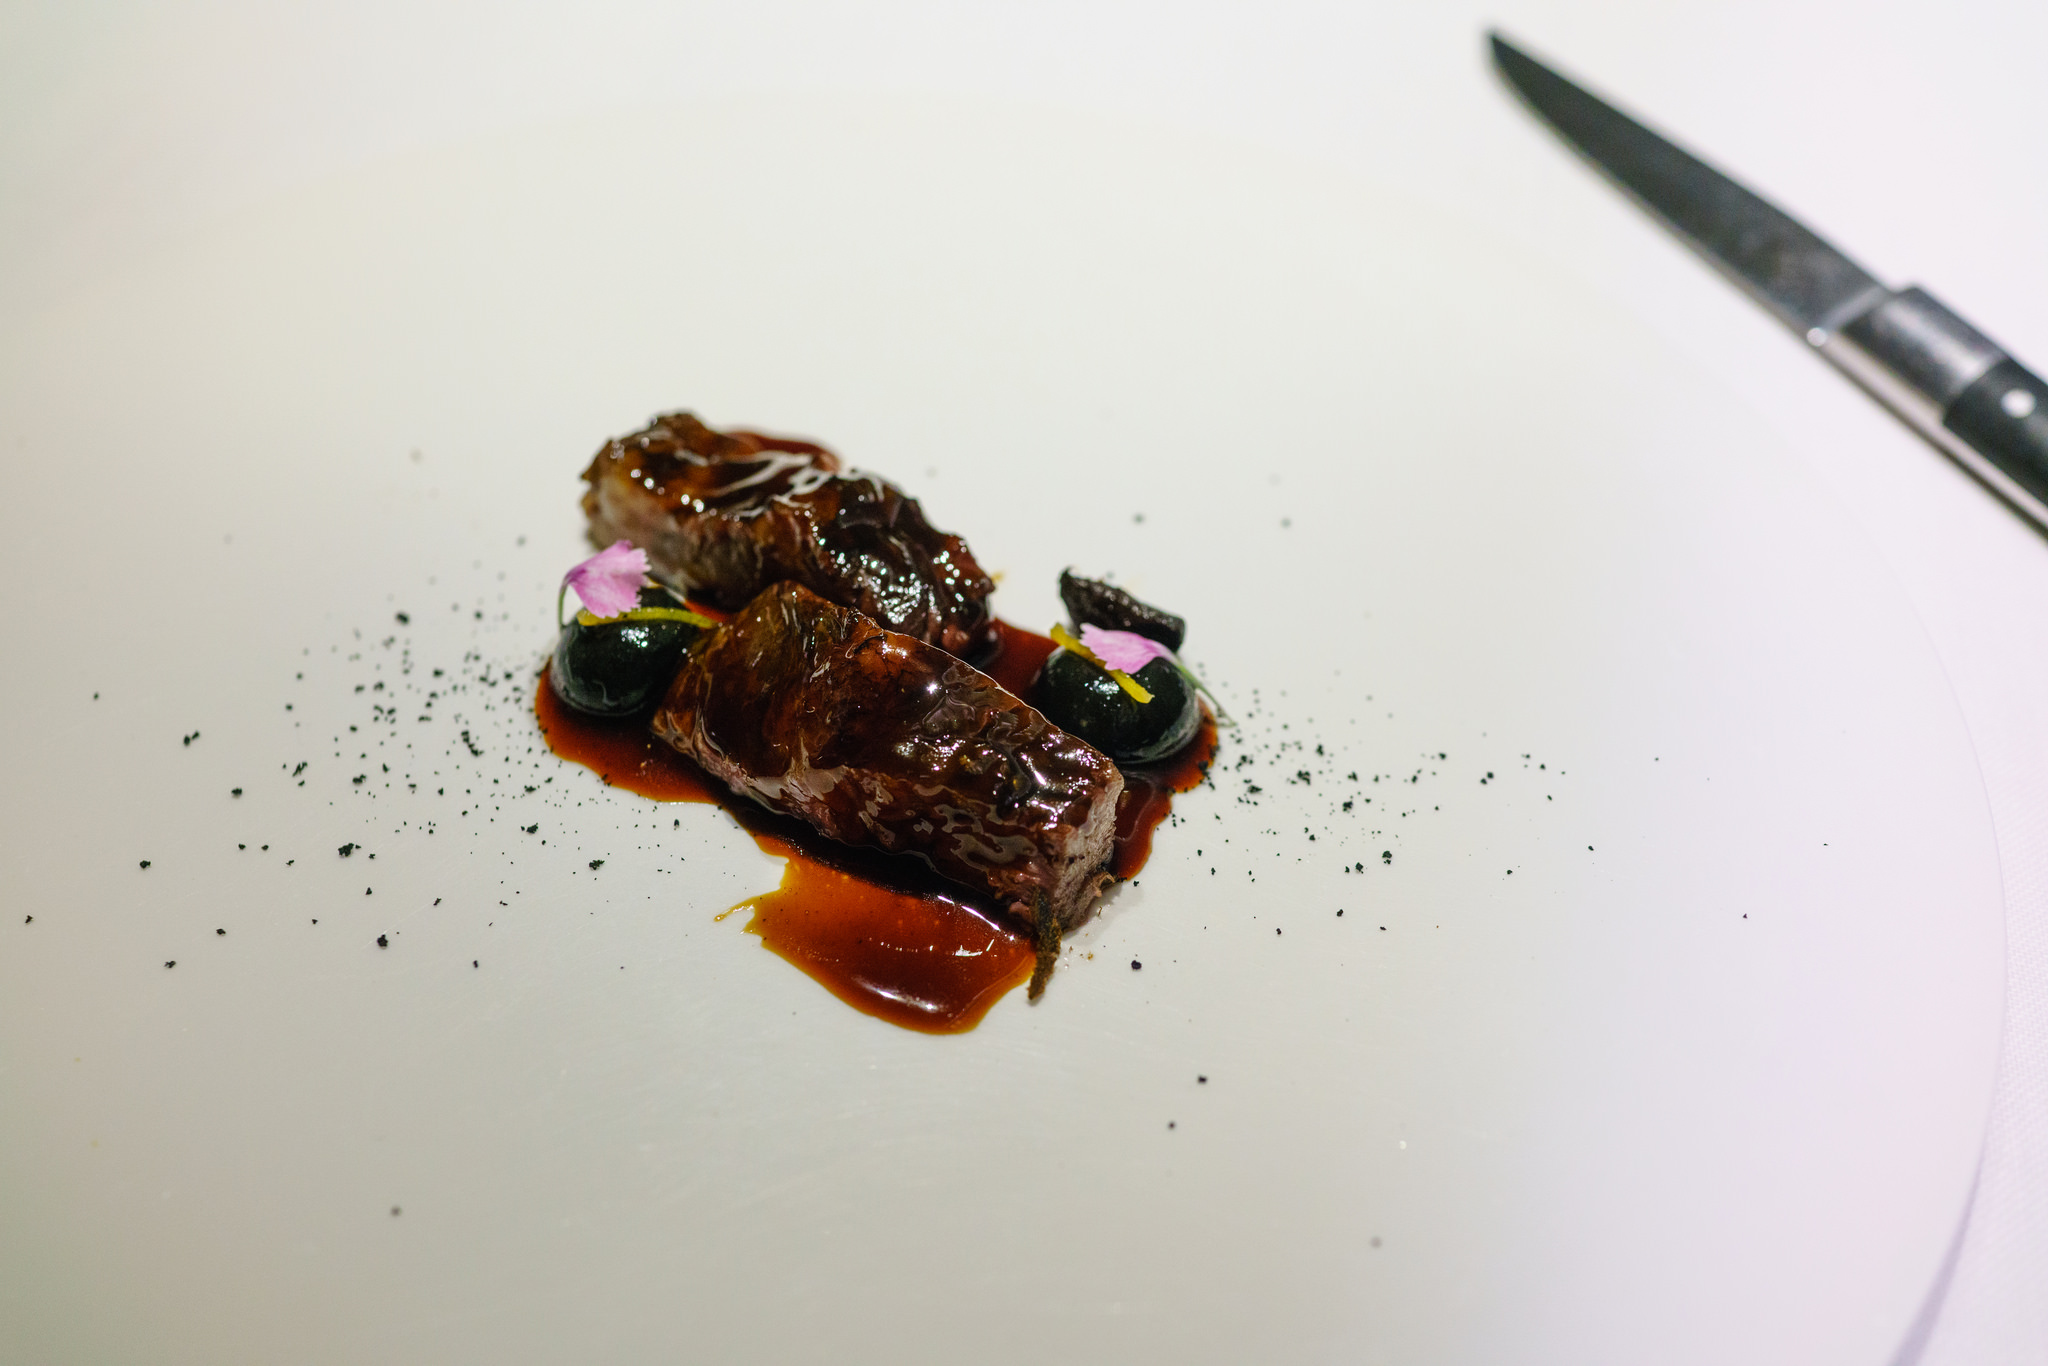 Chargrilled Aubergine with Beef Brisket and Aged Meat Jus at Restaurant Abac in Barcelona, Spain